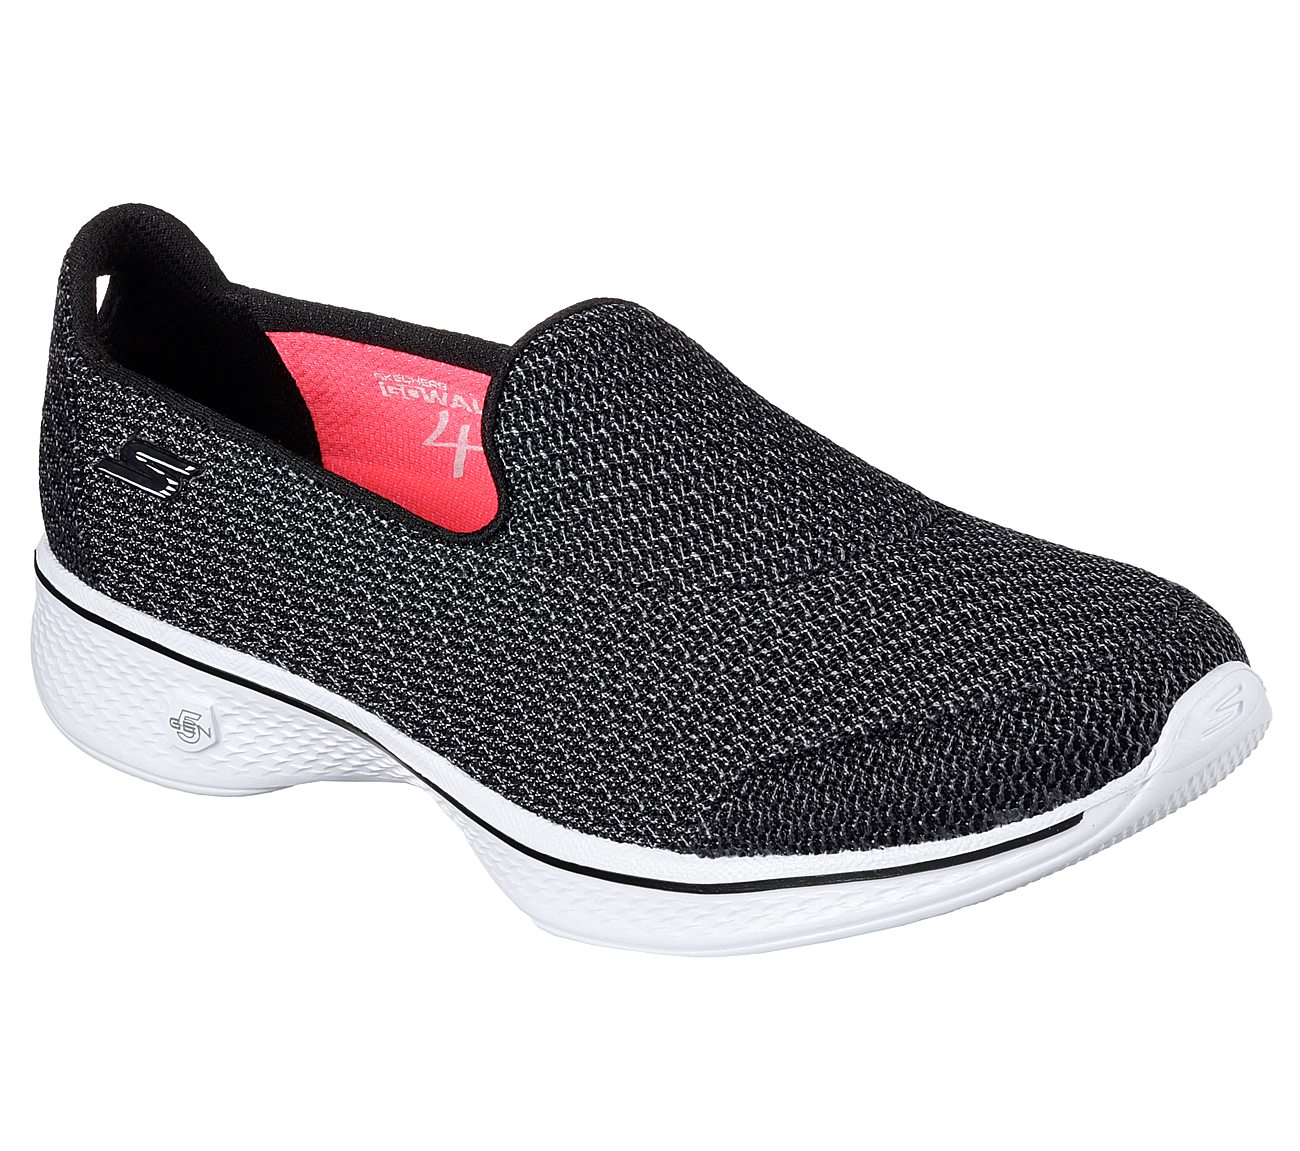 skechers performance go walk 4